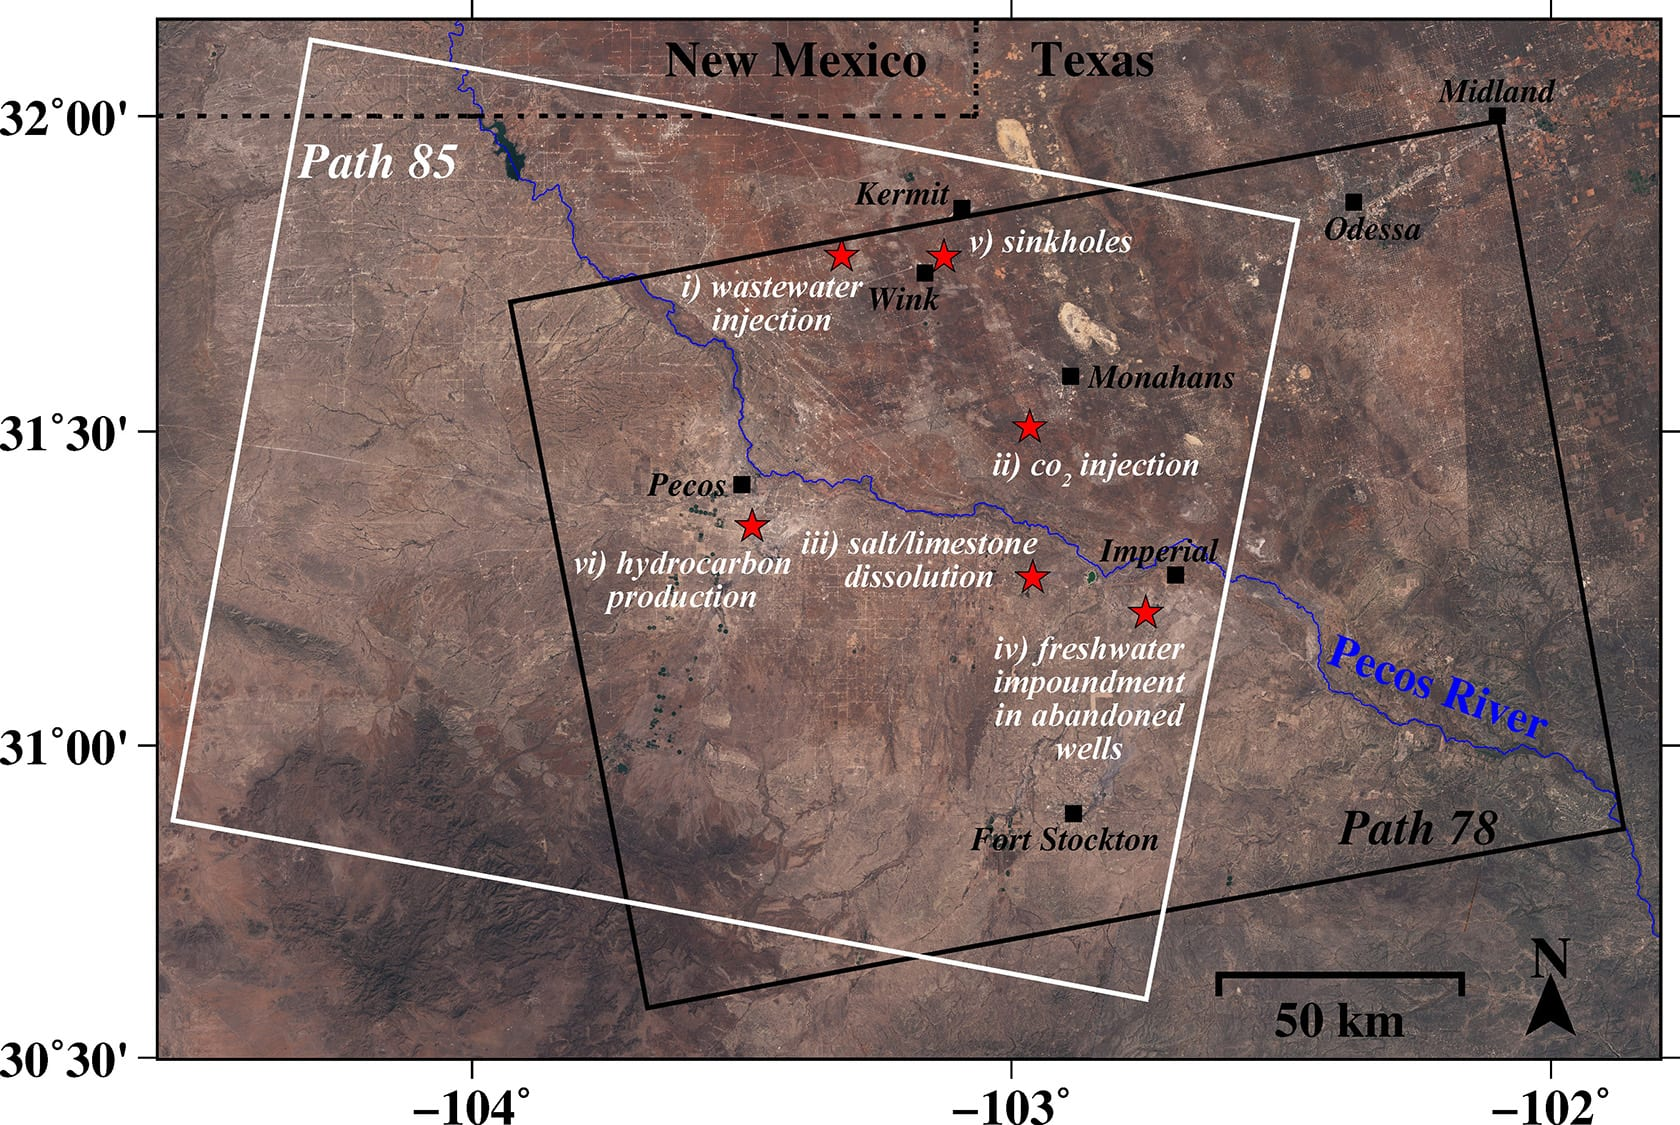 A new study by an SMU geophysical team found alarming rates of ground movement at various locations across a 4000-square-mile area of four Texas counties. Attribution: Zhong Lu, Jin-Woo Kim, SMU